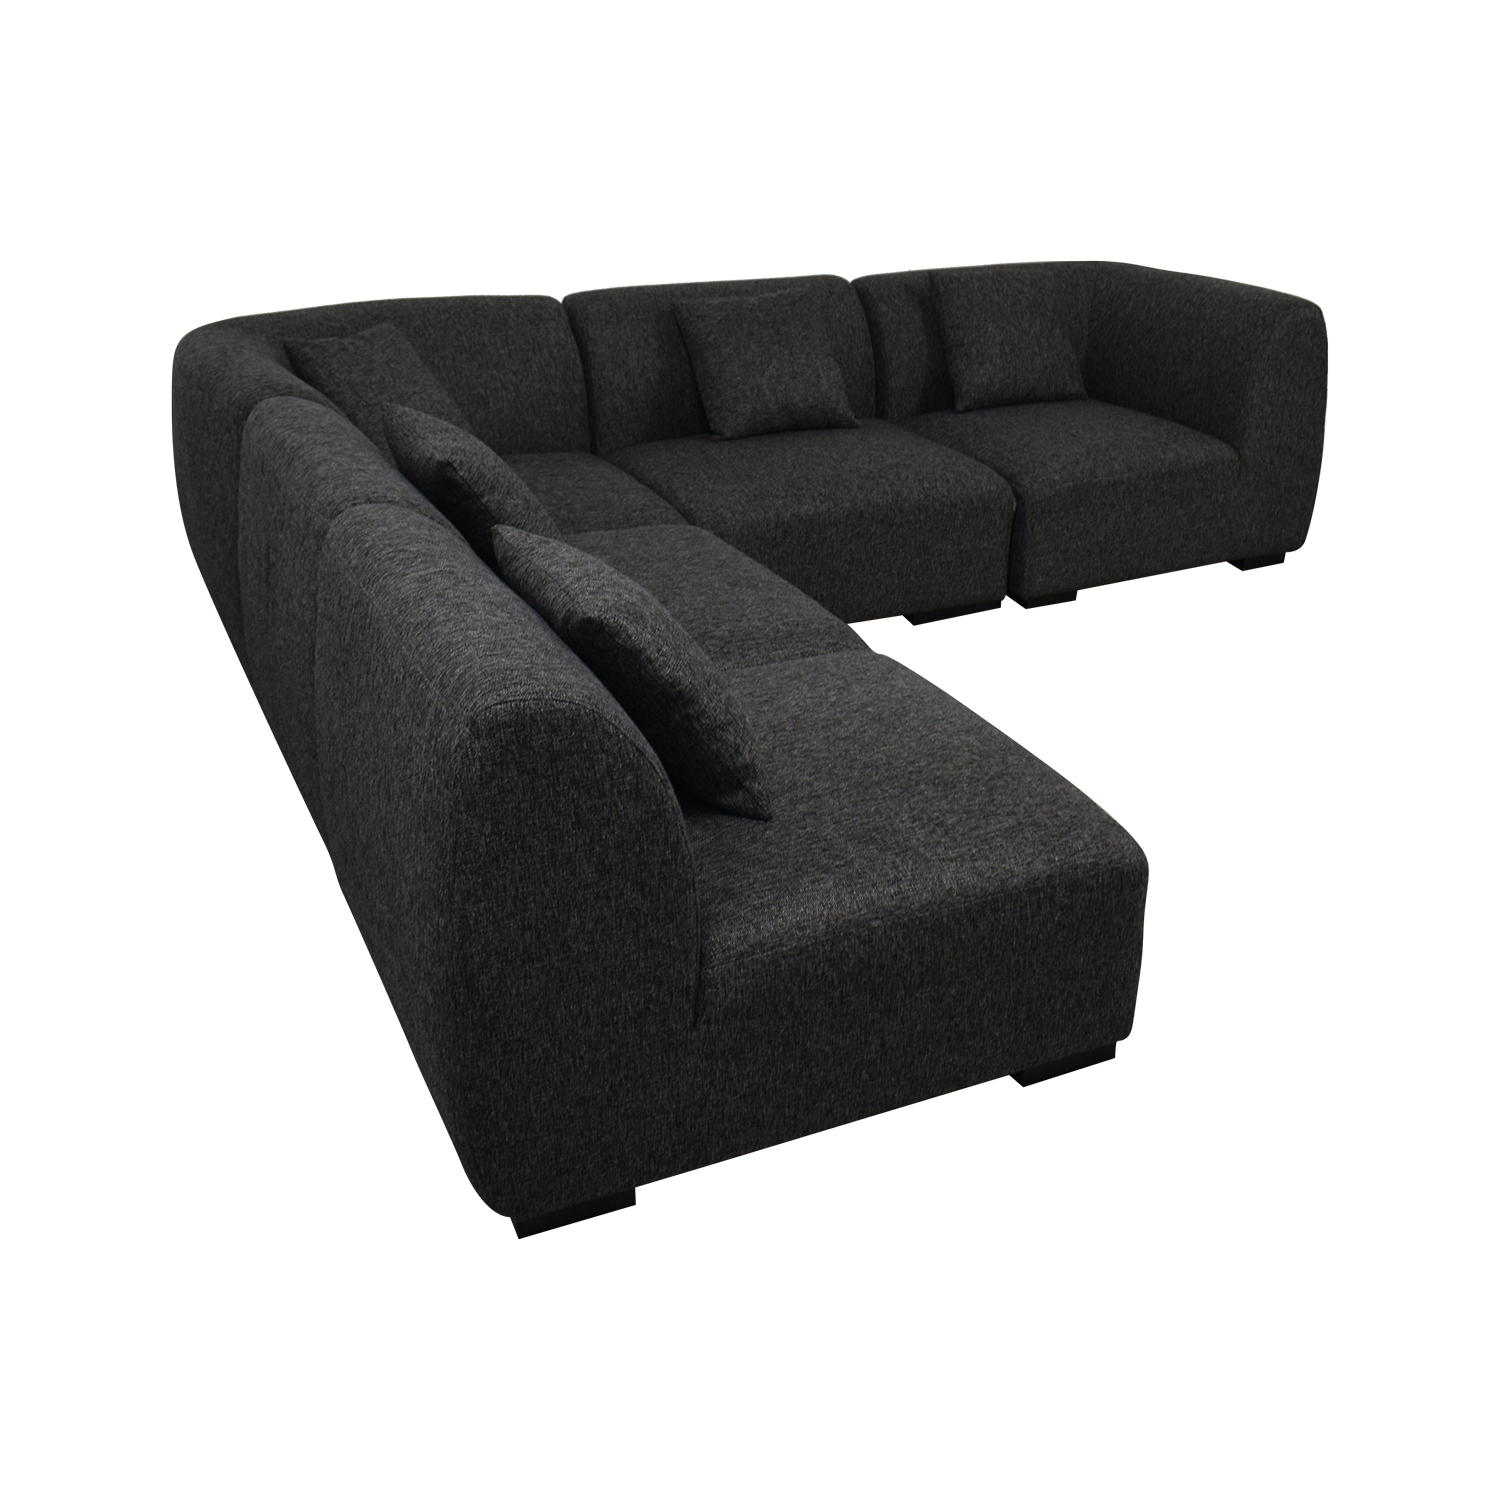 Scandinavian Design Kelsey Modular Sectional Scandinavian Designs